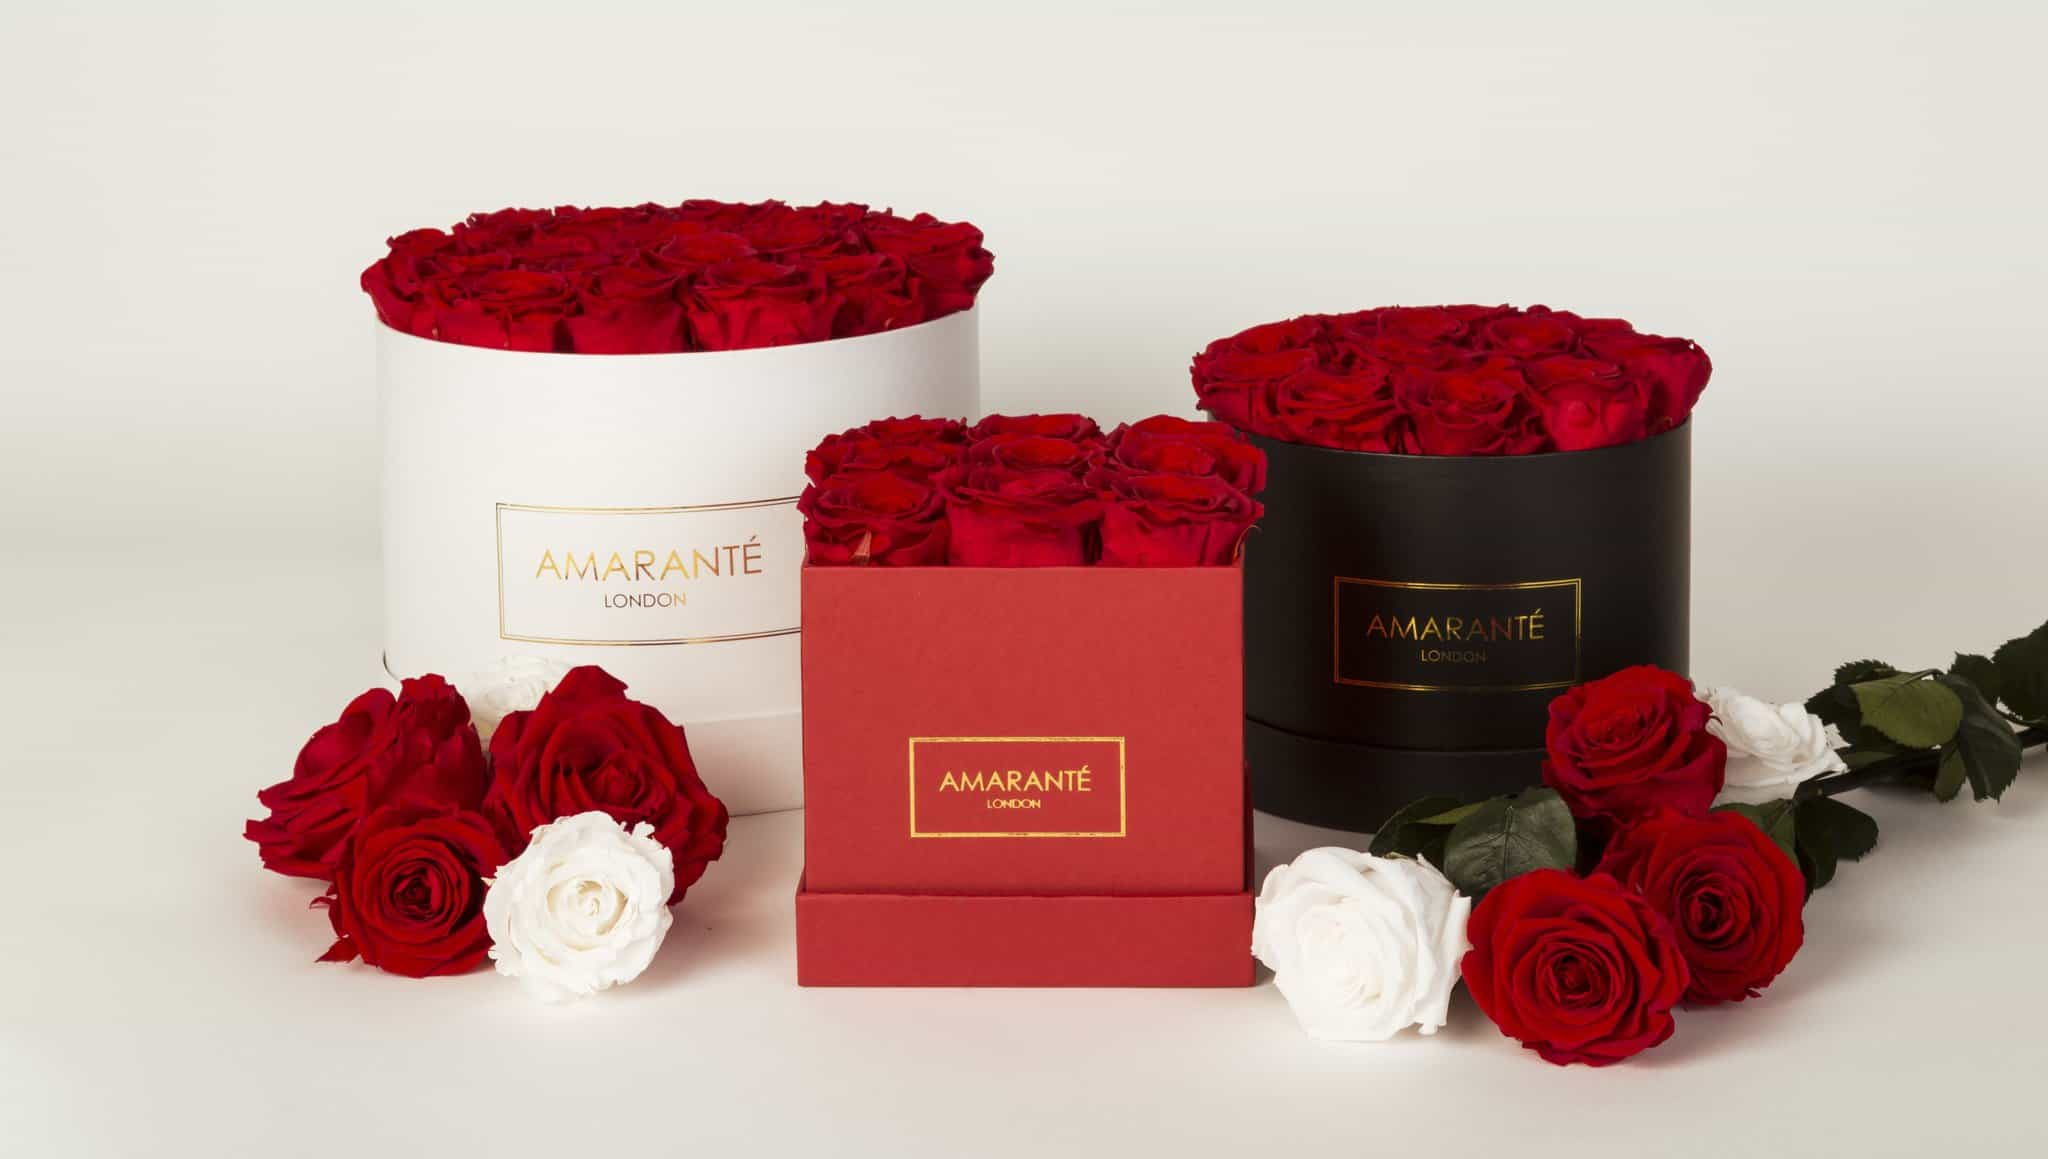 Red forever roses in a hatbox - Amaranté London